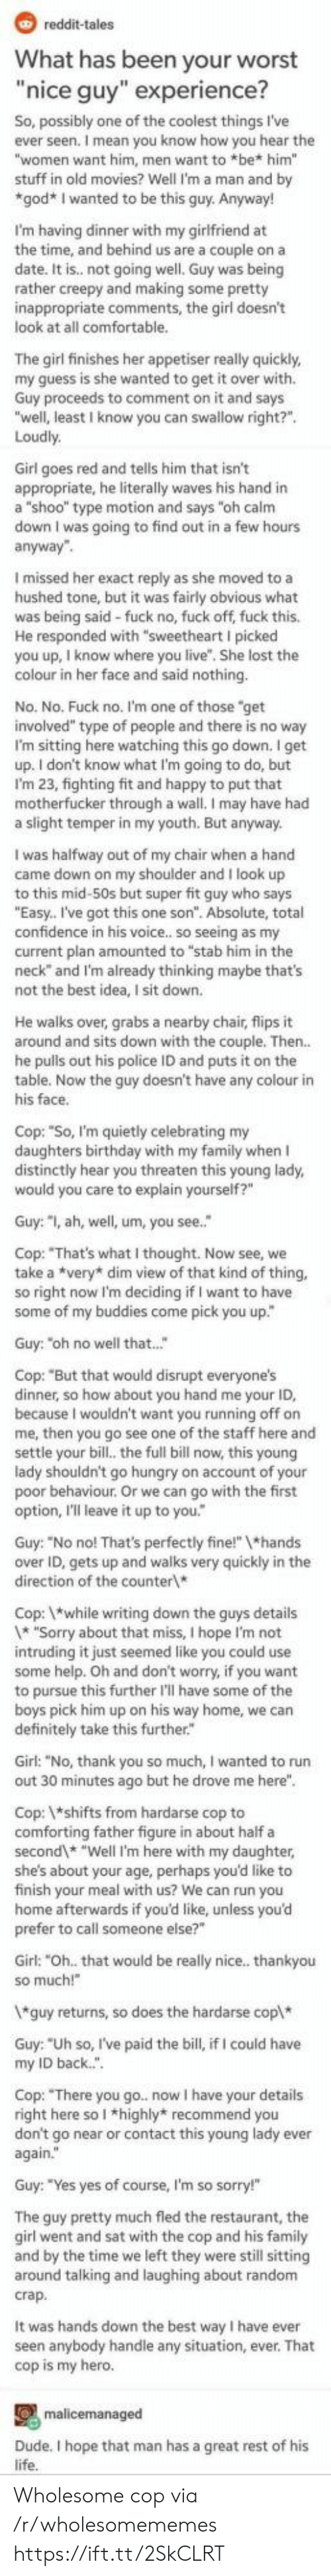 "Wholesome: reddit-tales  What has been your worst  ""nice guy"" experience?  So, possibly one of the coolest things I've  ever seen. I mean you know how you hear the  ""women want him, men want to *be* him""  stuff in old movies? Well I'm a man and by  *god* I wanted to be this guy. Anyway!  I'm having dinner with my girlfriend at  the time, and behind us are a couple on a  not going well. Guy was being  I  rather  inappropriate comments, the girl doesn't  look at all comfortable.  The girl finishes her appetiser really quickly  my guess is she wanted to get it over with.  Guy proceeds to comment on it and says  ""well, least I know you can swallow right?""  Loudly  Girl goes red and tells him that isn't  appropriate, he literally waves his hand in  a ""shoo"" type motion and says ""oh calm  down I was going to find out in a few hours  anyway""  I missed her exact re  as she moved to a  hushed tone, but it was fairly obvious what  was being said-fuck no, fuck off, fuck this.  He responded with ""sweetheart I picked  lost the  colour in her face and said nothing.  No. No. Fuck no. I'm one of those ""get  involved"" type of people and there is no way  I'm sitting here watching this go down. I get  up. I don't know what I'm going to do, but  I'm 23, fighting fit and happy to put that  motherfucker through a wall. I may have had  a slight temper in my youth. But anyway.  I was halfway out of my chair when a hand  came down on my shoulder and I look up  to this mid-50s but super fit guy who says  ""Easy. I've got this one son"". Absolute, total  confidence in his voice.. so seeing as my  current plan amounted to ""stab him in the  neck"" and I'm already thinking maybe that's  not the best idea, I sit down.  He walks over, grabs a nearby chair, flips it  around and sits down with the couple. Then..  he pulls out his police ID and puts it on the  table. Now the guy doesn't have any colour in  his face  Cop: ""So, I'm quietly celebrating my  daughters birthday with my family when I  distinctly hear you threaten this young lady,  would you care to explain yourself?""  Guy: ""I, ah, well, um, you see.  Cop: ""That's what I thought. Now see, we  take a *very* dim view of that kind of thing,  so right now I'm deciding if I want to have  some of my buddies come pick you up""  Guy: ""oh no well that...""  Cop: ""But that would disrupt everyone's  dinner, so how about you hand me your ID,  me, the dn't want yhe staff here and  settle your bill., the full bill now, this young  lady shouldn't go hungry on account of your  poor behaviour. Or we can go with the first  option, I'll leave it up to you.  Guy: ""No no! That's perfectly fine!"" 1*hands  over ID, gets up and walks very quickly in the  direction of the counter  Cop: while writing down the guys details  1* ""Sorry about that miss, I hope I'm not  intruding it just seemed like you could use  some help. Oh and don't worry, if you want  to pursue this further I'll have some of the  boys pick him up on his way home, we can  definitely take this further.  Girl: ""No, thank you so much, I wanted to run  out 30 minutes ago but he drove me here"".  Cop: *shifts from hardarse cop to  comforting father figure in about half a  second* ""Well I'm here with my daughter,  she's about your age, perhaps you'd like to  finish your meal with us? We can run you  home afterwards if you'd like, unless you'd  prefer to call someone else?""  Girl: ""Oh.. that would be really nice.. thankyou  so much!  *guy returns, so does the hardarse cop*  Guy: ""Uh so, I've paid the bill, if I could have  back."".  my  Cop: ""There you go. now I have your details  right here so I *highly* recommend you  don't go near or contact this young lady ever  again.  Guy: ""Yes yes of course, I'm so sorry!""  The quy pretty much fled the restaurant, the  qirl went and sat with the cop and his family  and by the time we left they were still sitting  around talking and laughing about random  crap.  It was hands down the best way I have ever  seen anybody handle any situation, ever. That  cop is my hero.  malicemanaged  Dude. I hope that man has a great rest of his  life. Wholesome cop via /r/wholesomememes https://ift.tt/2SkCLRT"